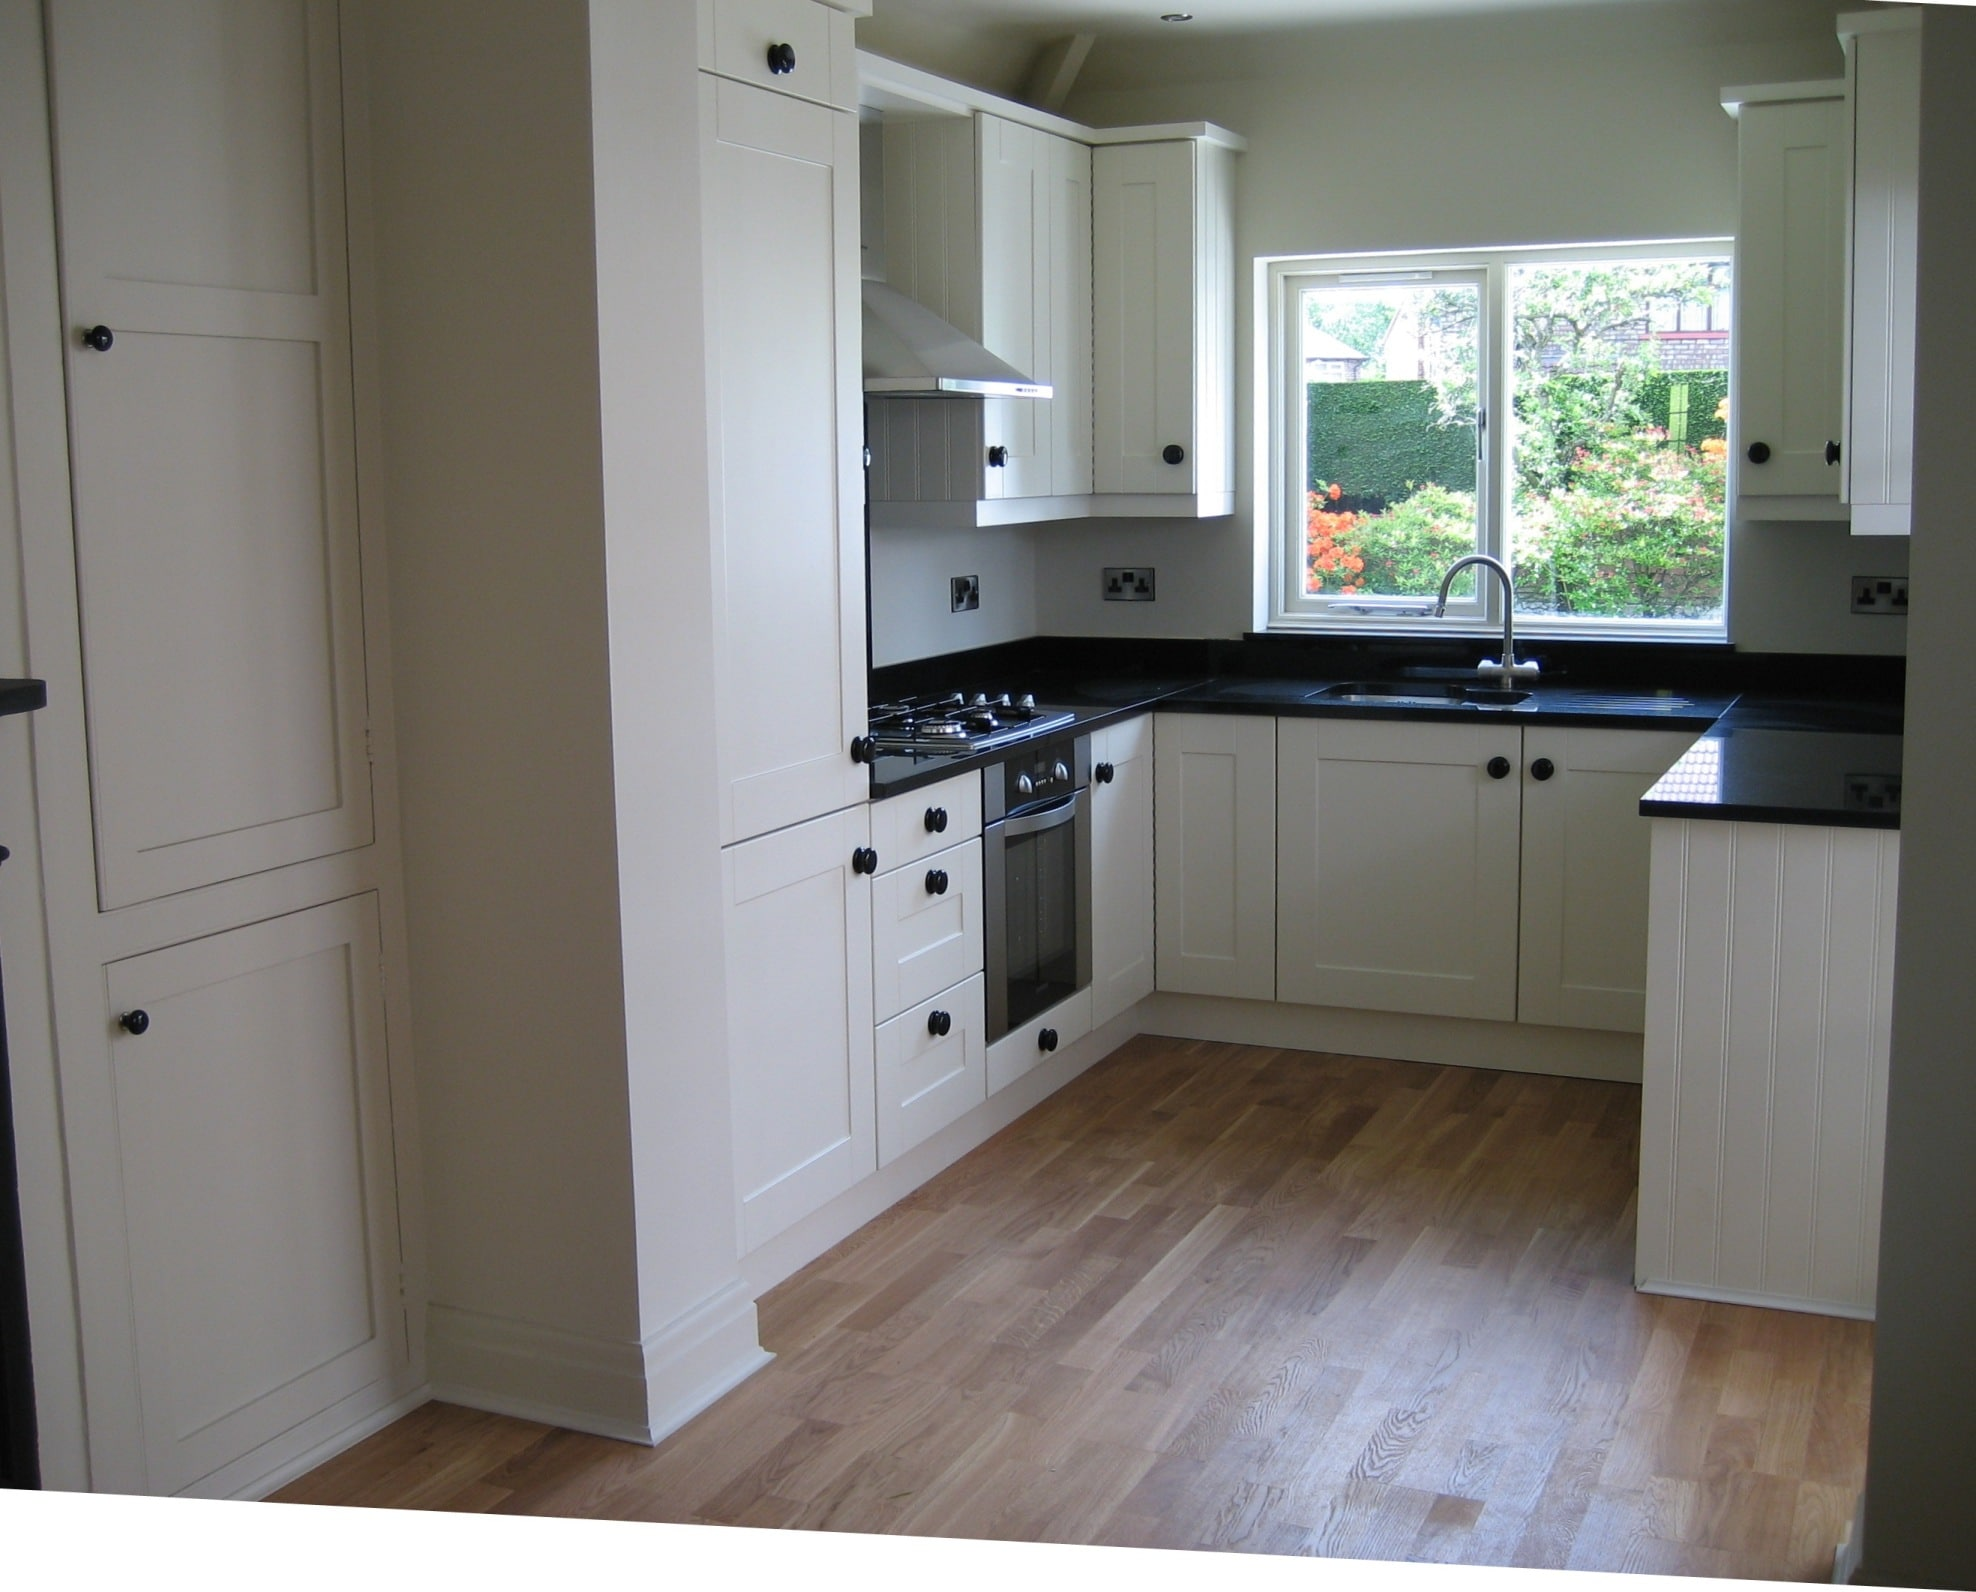 Timpery shaker fitted kitchen transforming homes for for Pictures of fitted kitchens